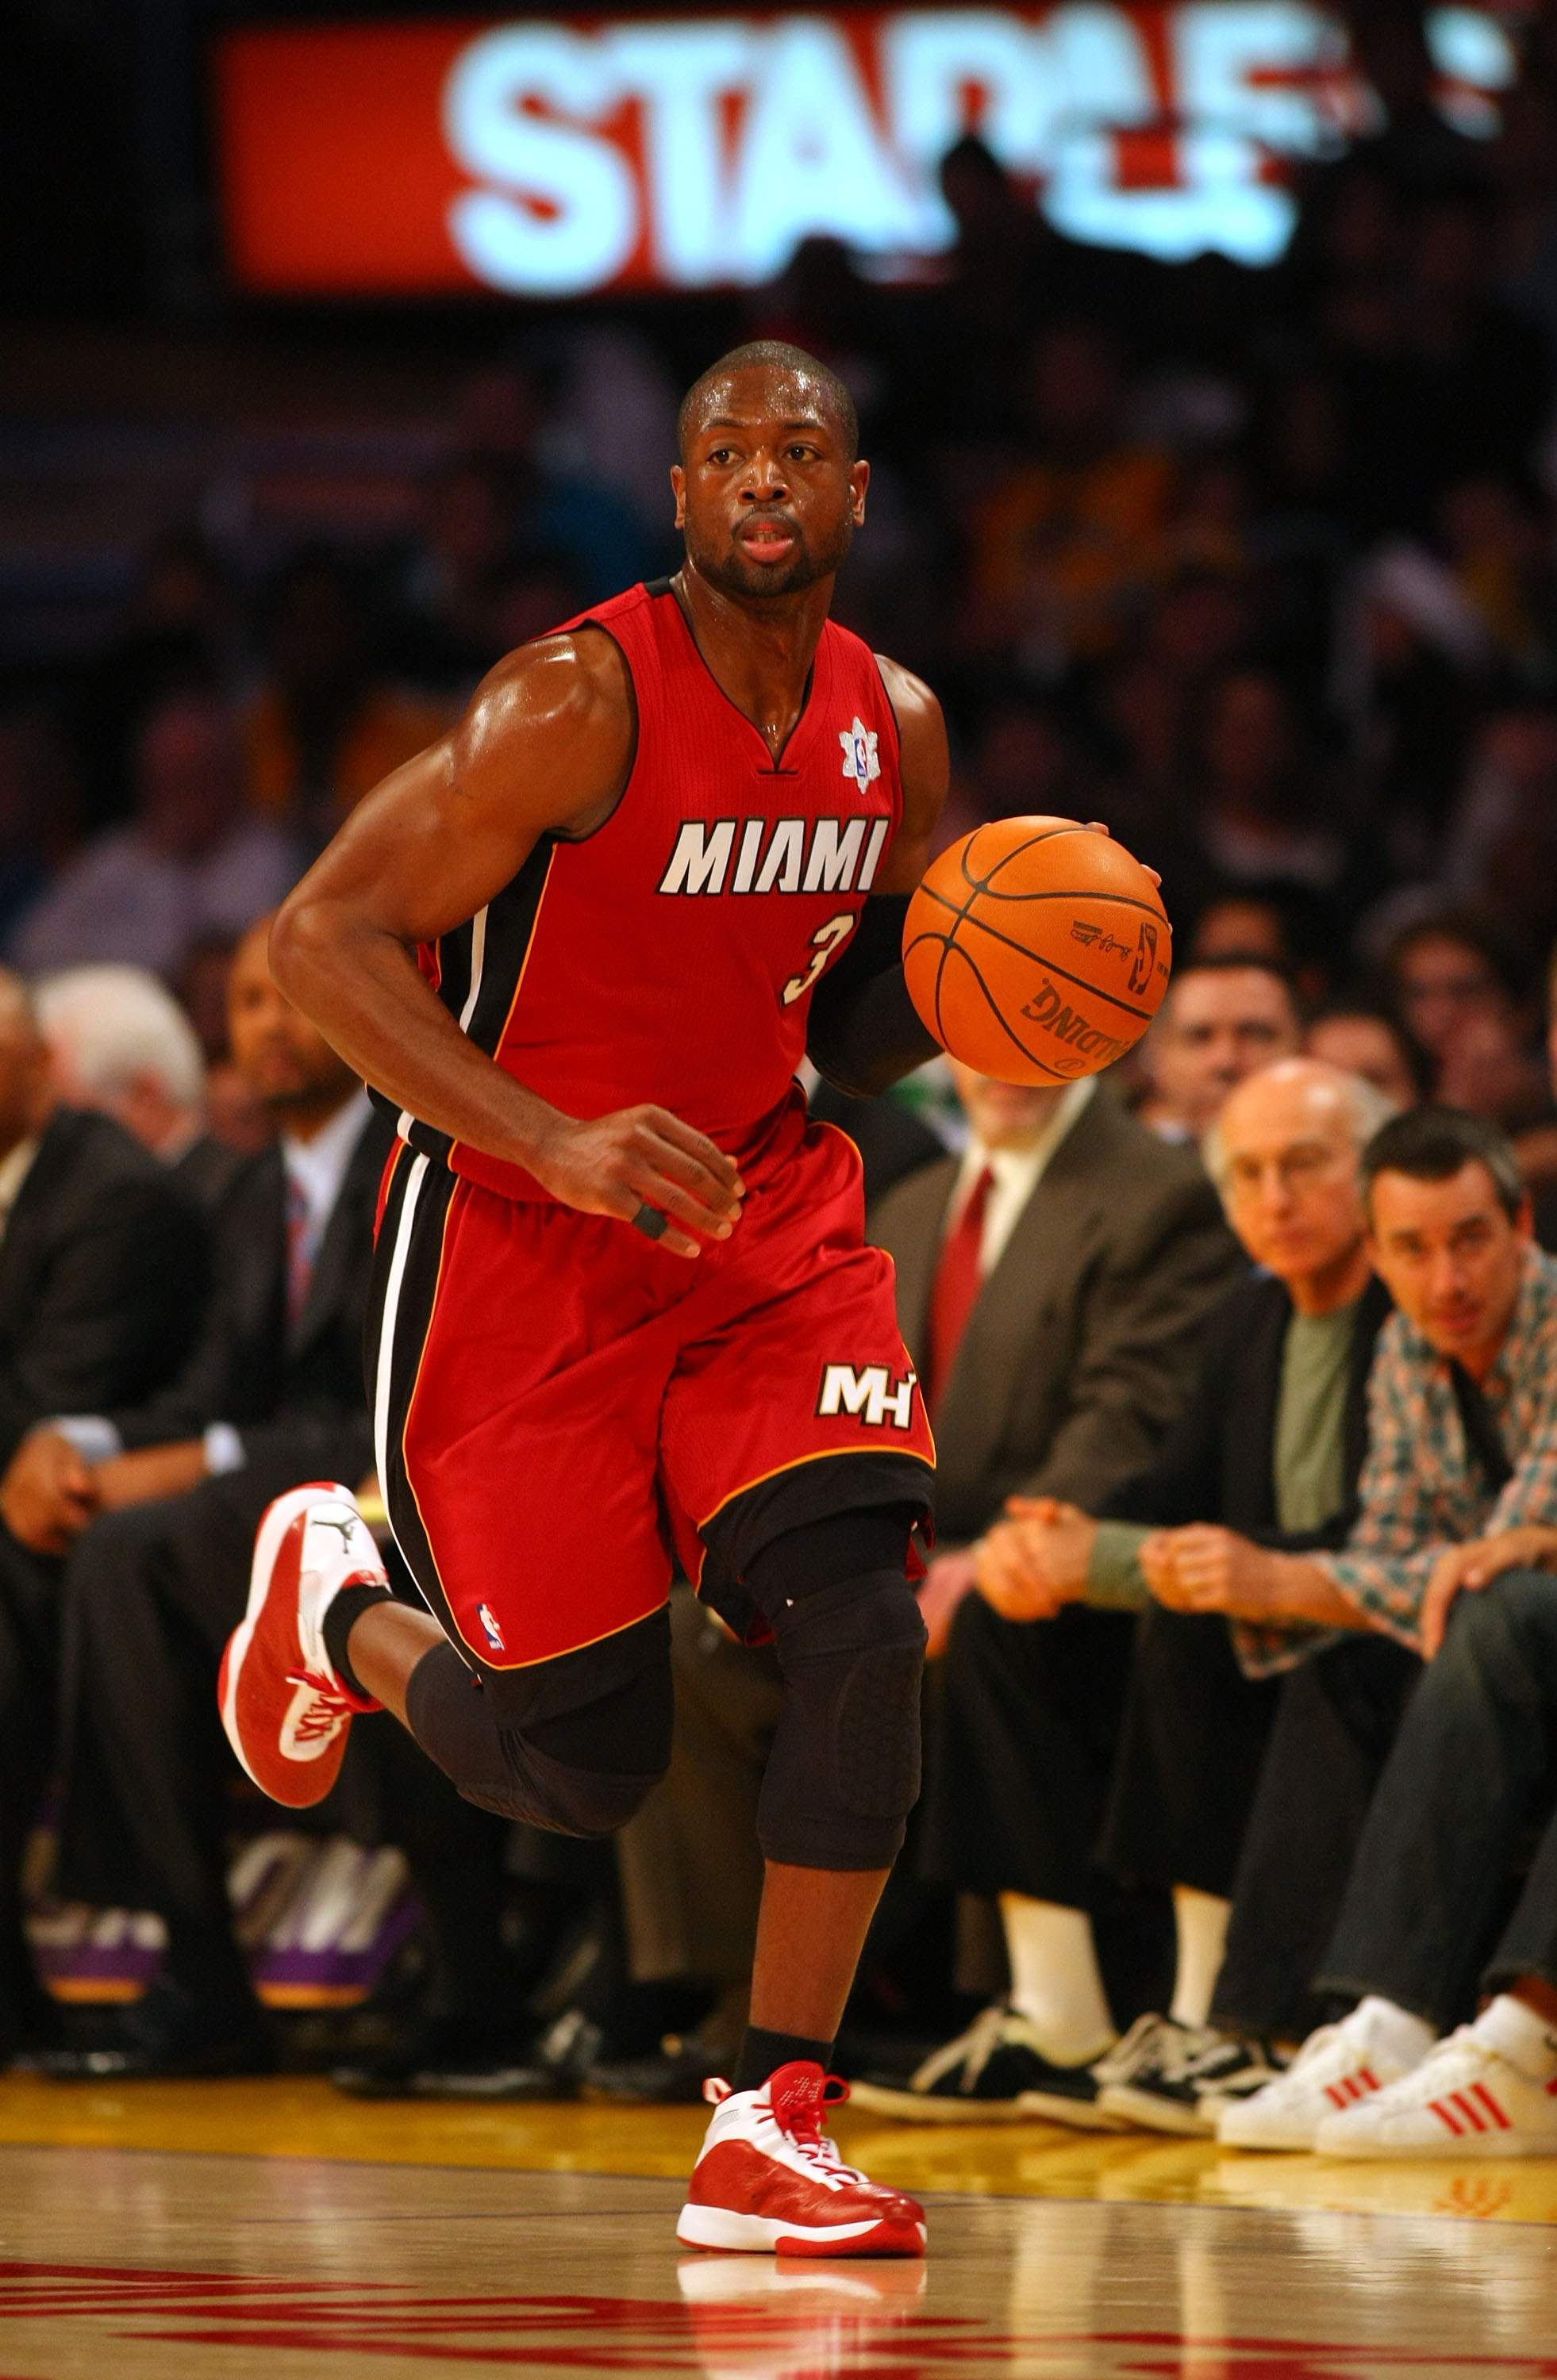 LOS ANGELES, CA - DECEMBER 25:  Dwyane Wade #3 of the Miami Heat dribbles the ball upcourt during the NBA game against the Los Angeles Lakers at Staples Center on December 25, 2010 in Los Angeles, California. The Heat defeated the Lakers 96-80. NOTE TO US